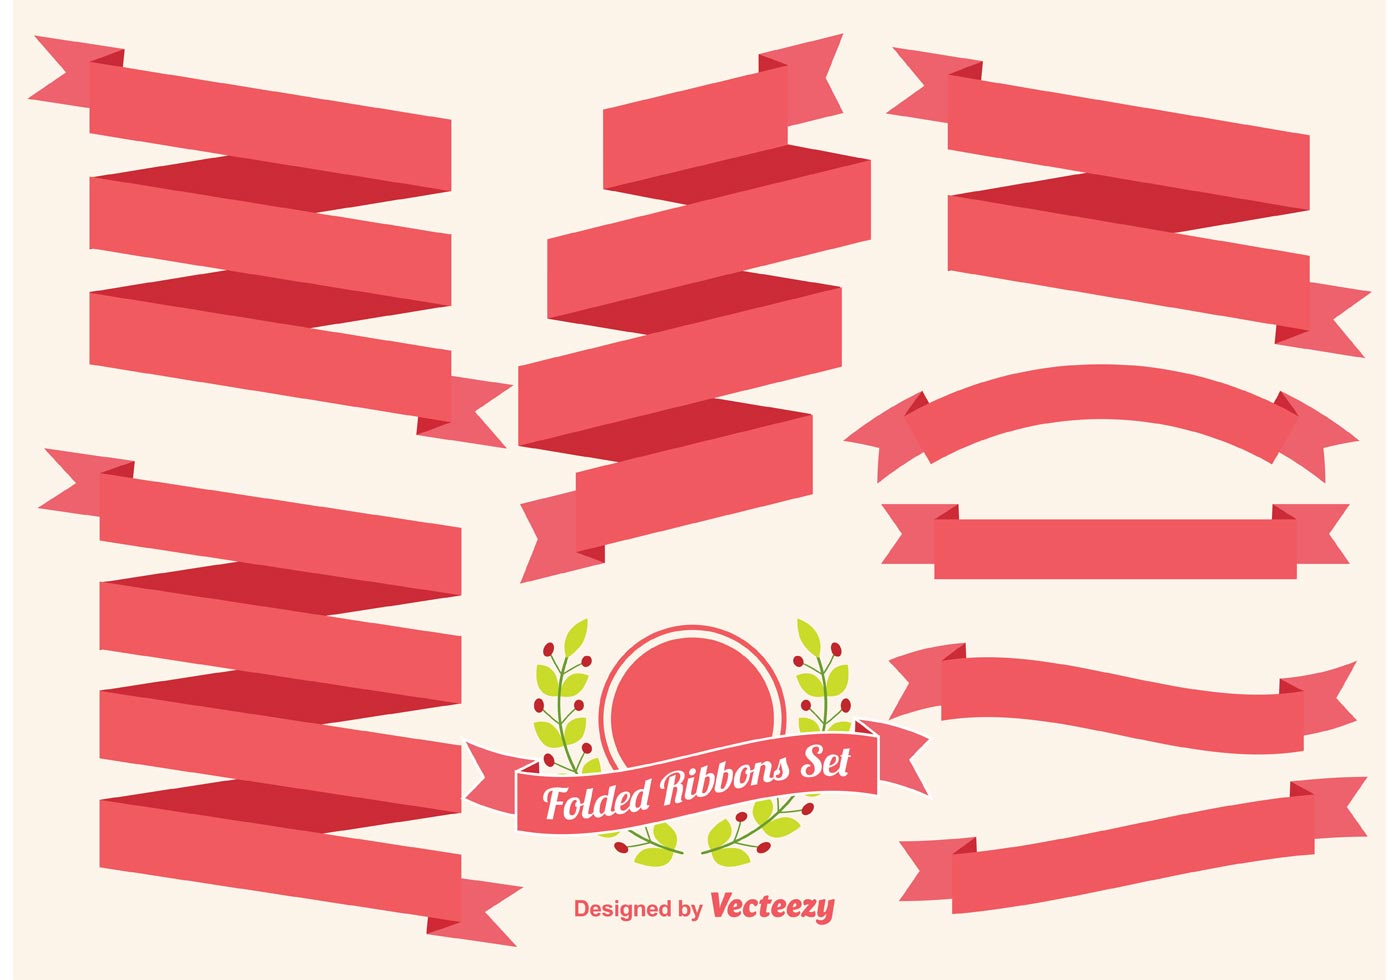 Folded Ribbons Vector Set - Download Free Vector Art ...